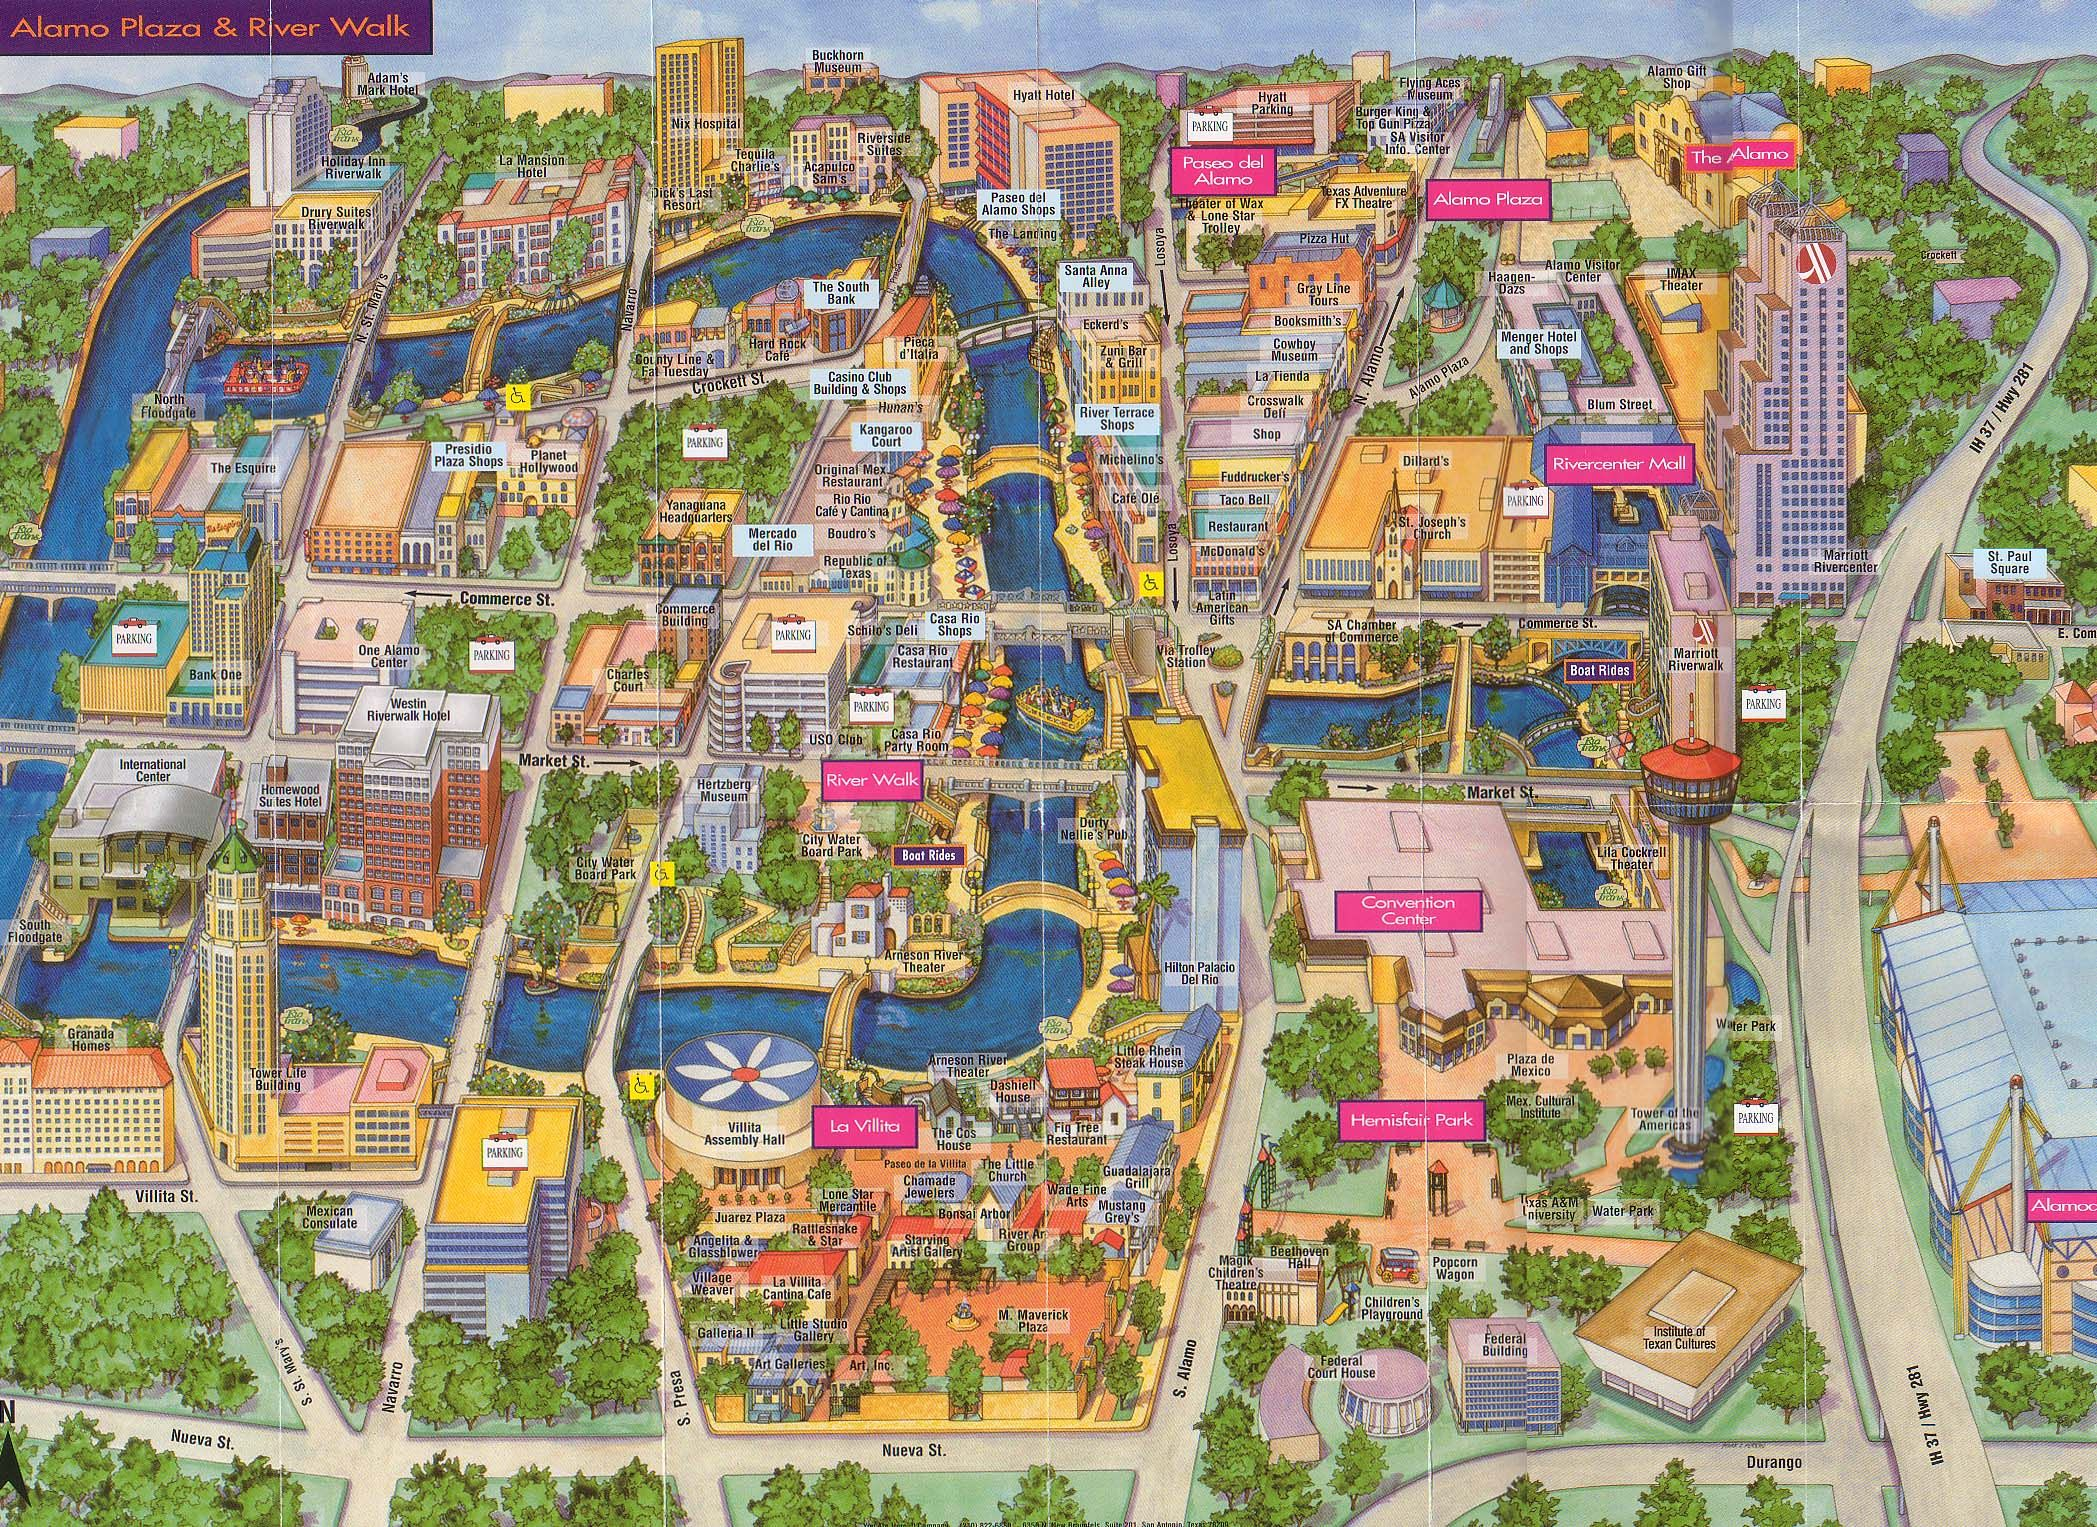 san antonio map attractions San Antonio San Antonio Texas Tourist Map See Map Details From Dreams World San Antonio Texas Riverwalk San Antonio River San Antonio Riverwalk san antonio map attractions